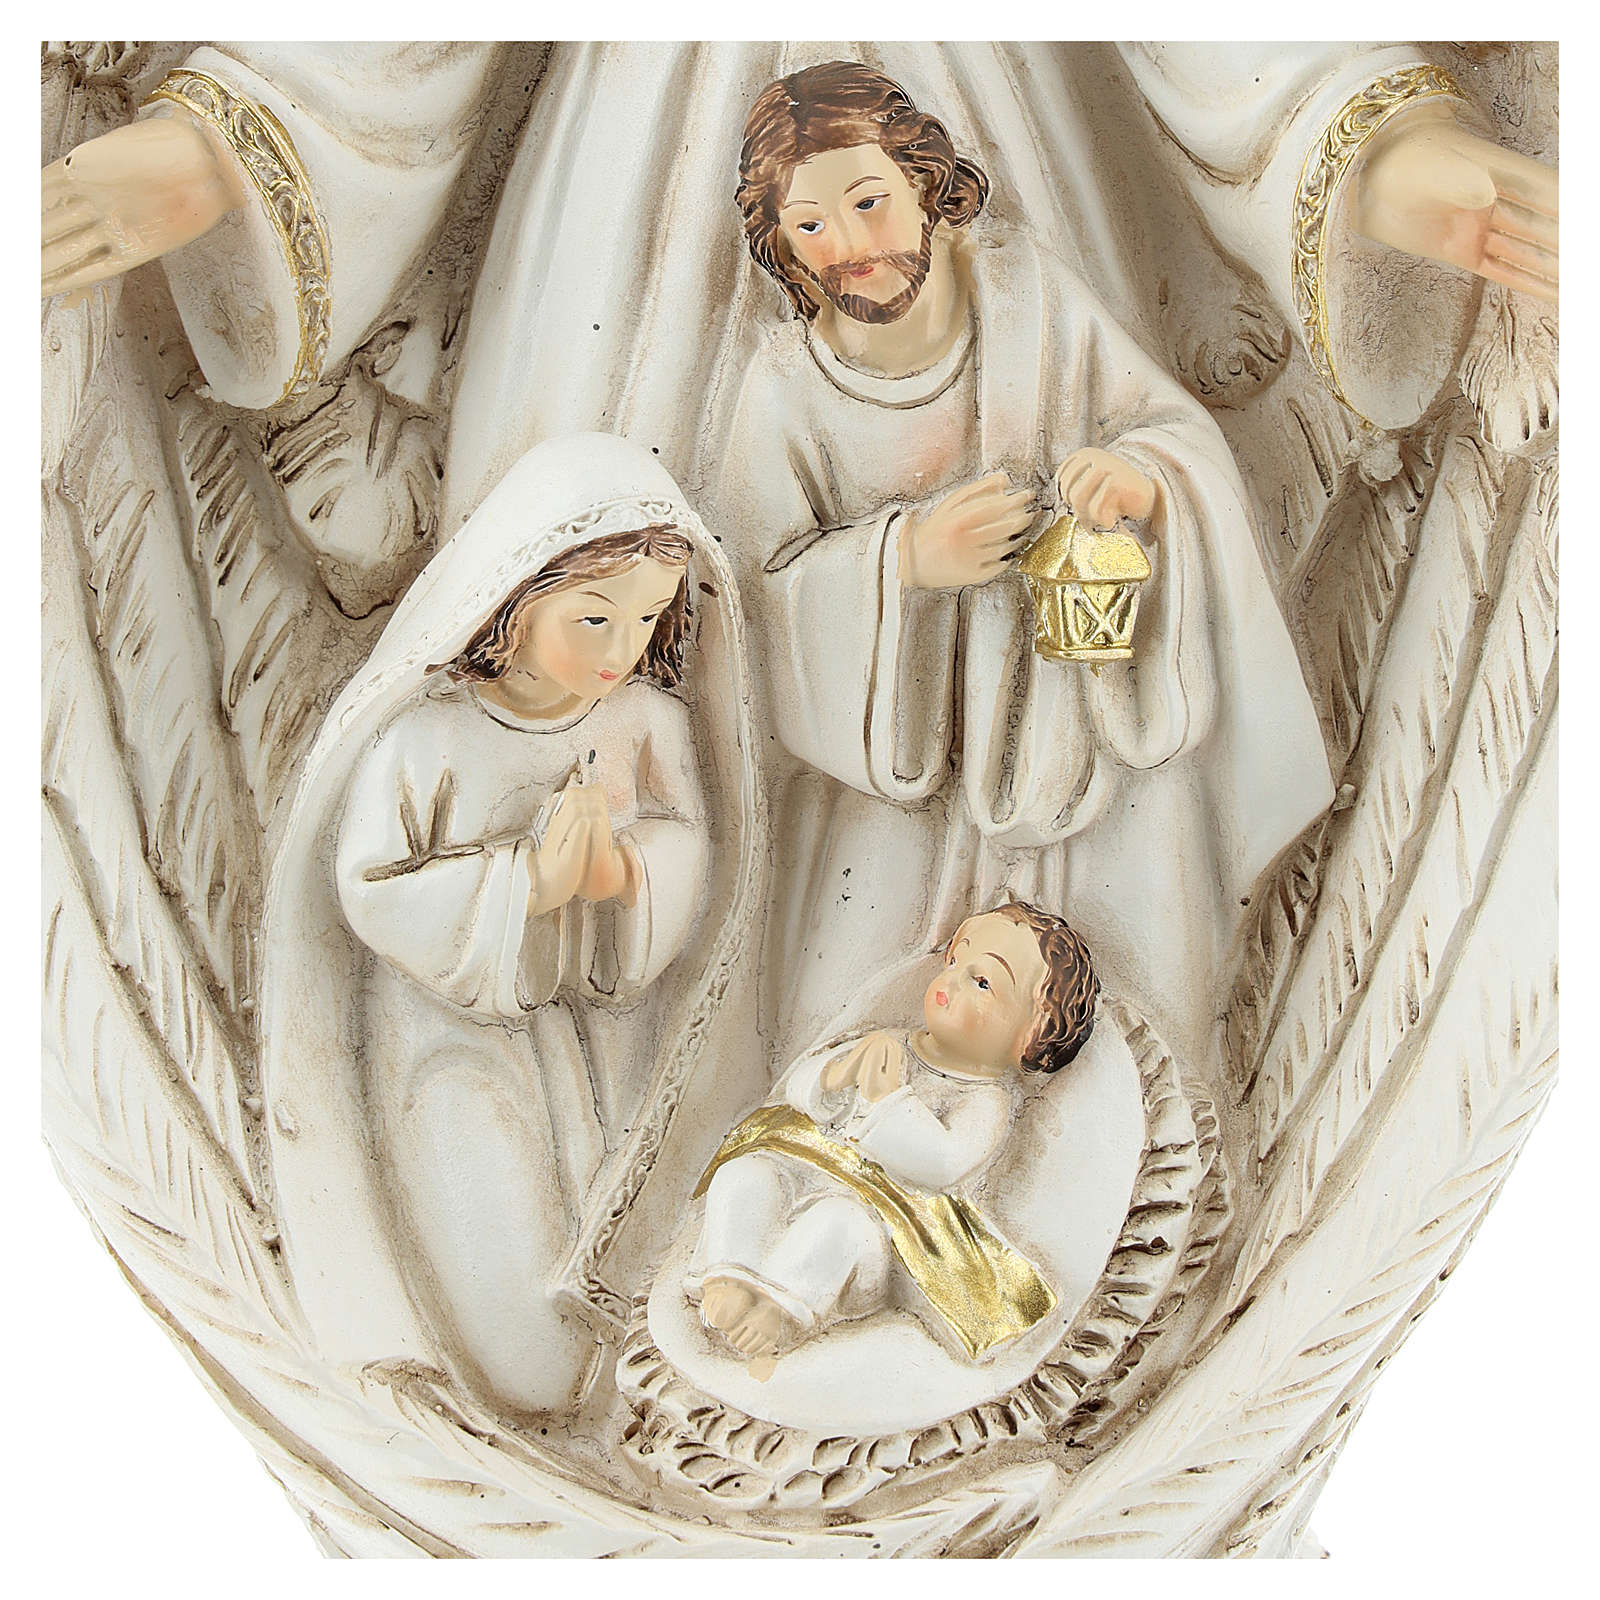 Nativity scene between the wings of the angel 23 cm resin 3